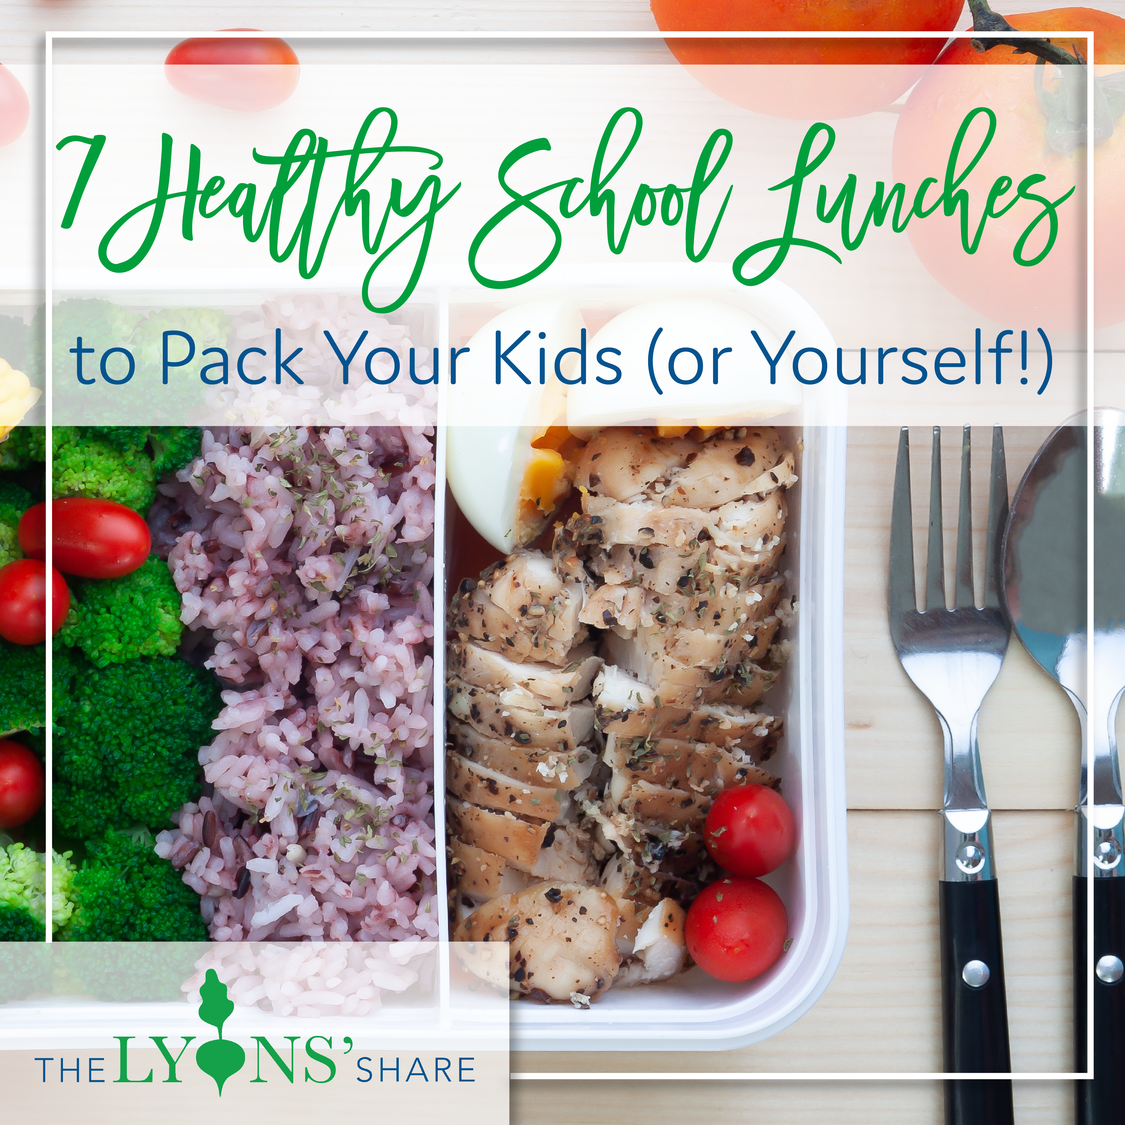 7 Healthy School Lunches to Pack for Your Kids (or Yourself!)